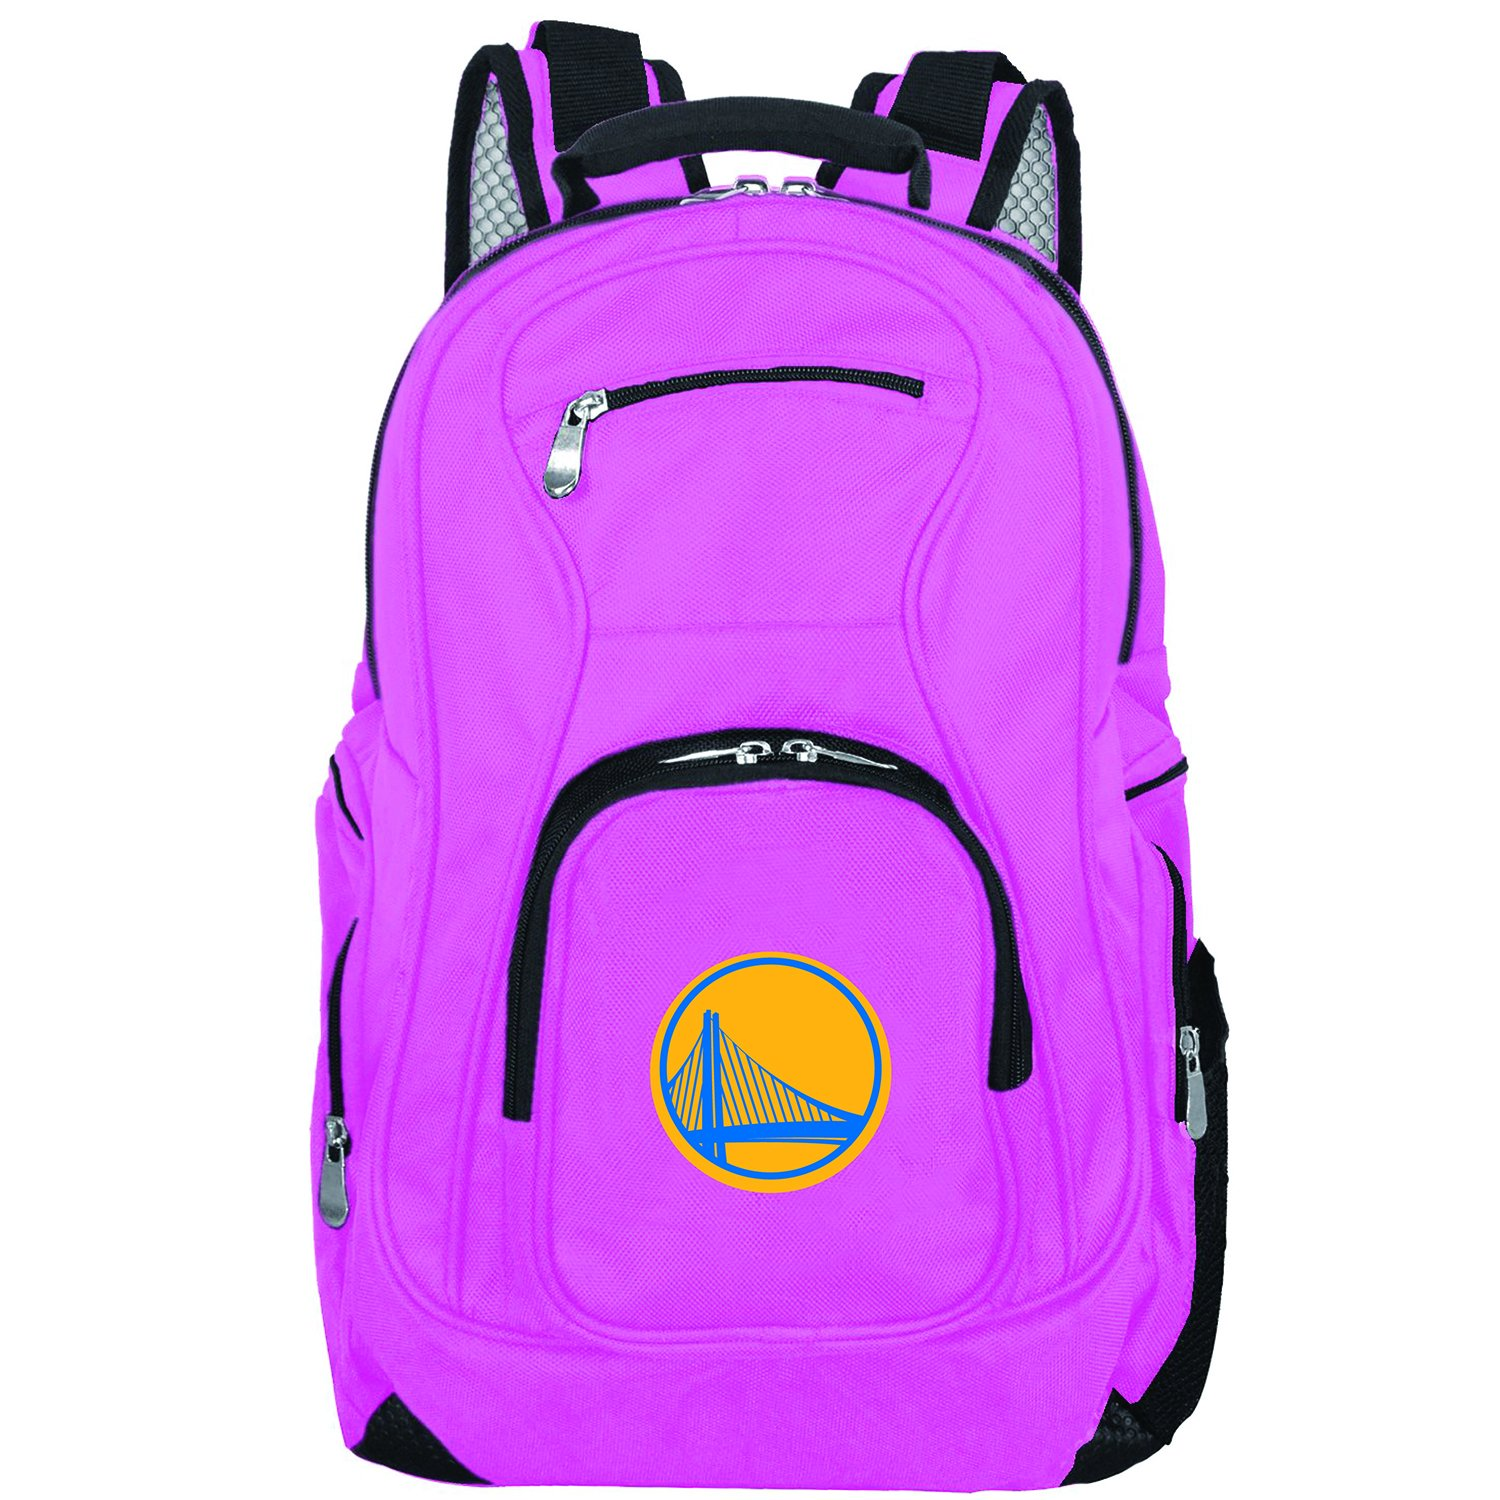 NBA Golden State Warriors Voyager Laptop Backpack, 19-inches, Pink